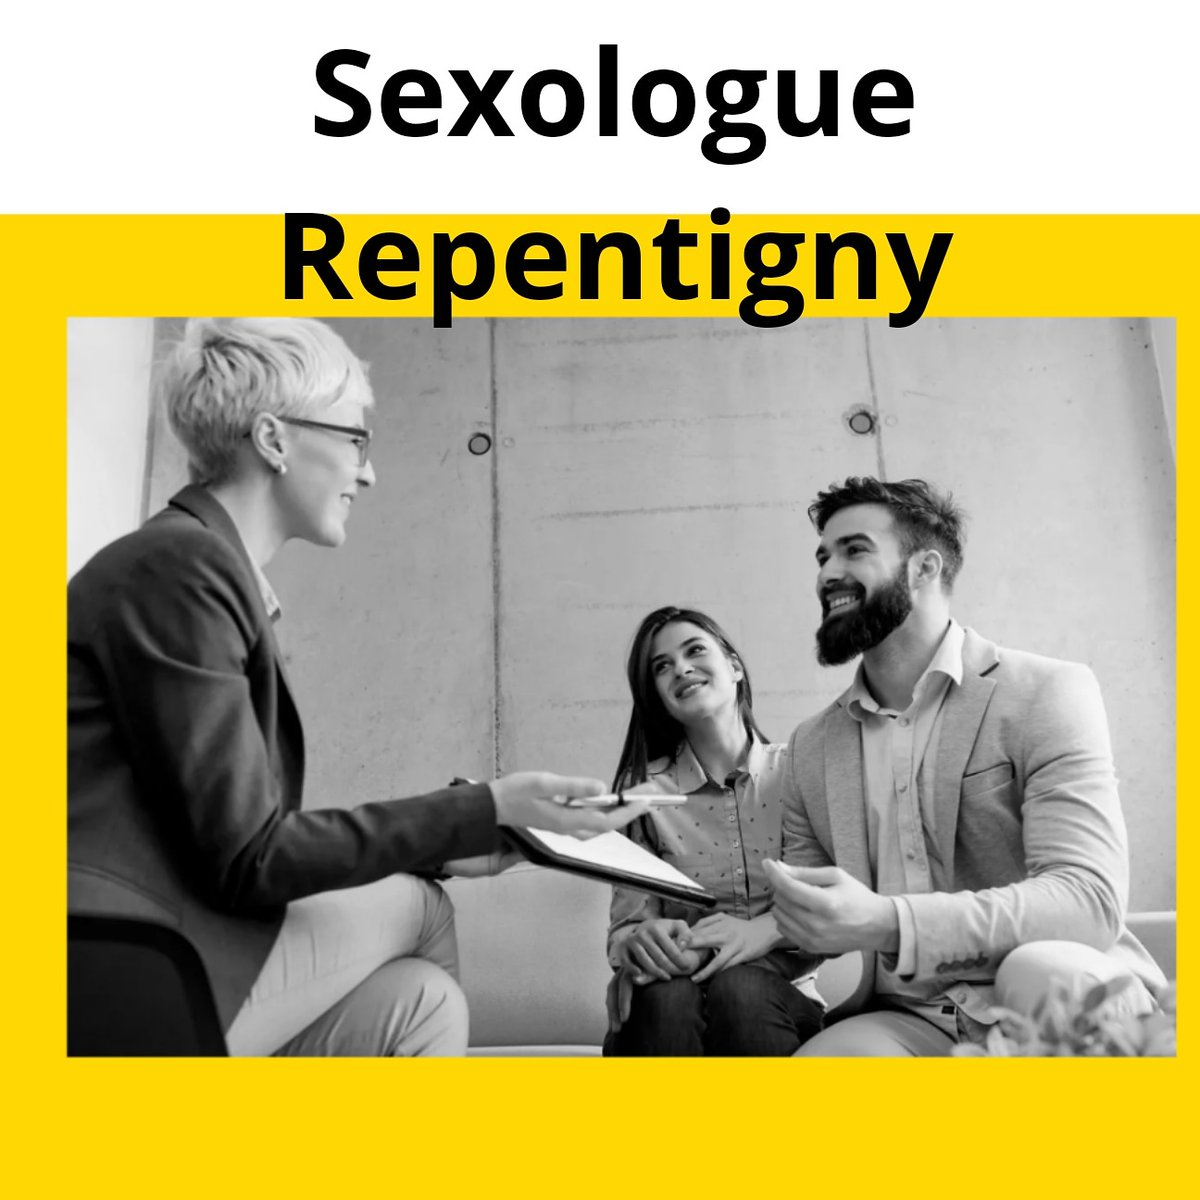 Lire la fiche de la sexologue https://t.co/wWQ2v7sGeH  # couple #individuel #communication #conflits #gestion des émotions #difficultés en relation # séparation #divorce # etc #cliniquepsydici  Services multidisciplinaires Téléphones 514.813.2986 450.654.2986 https://t.co/NM1ey3A5e3